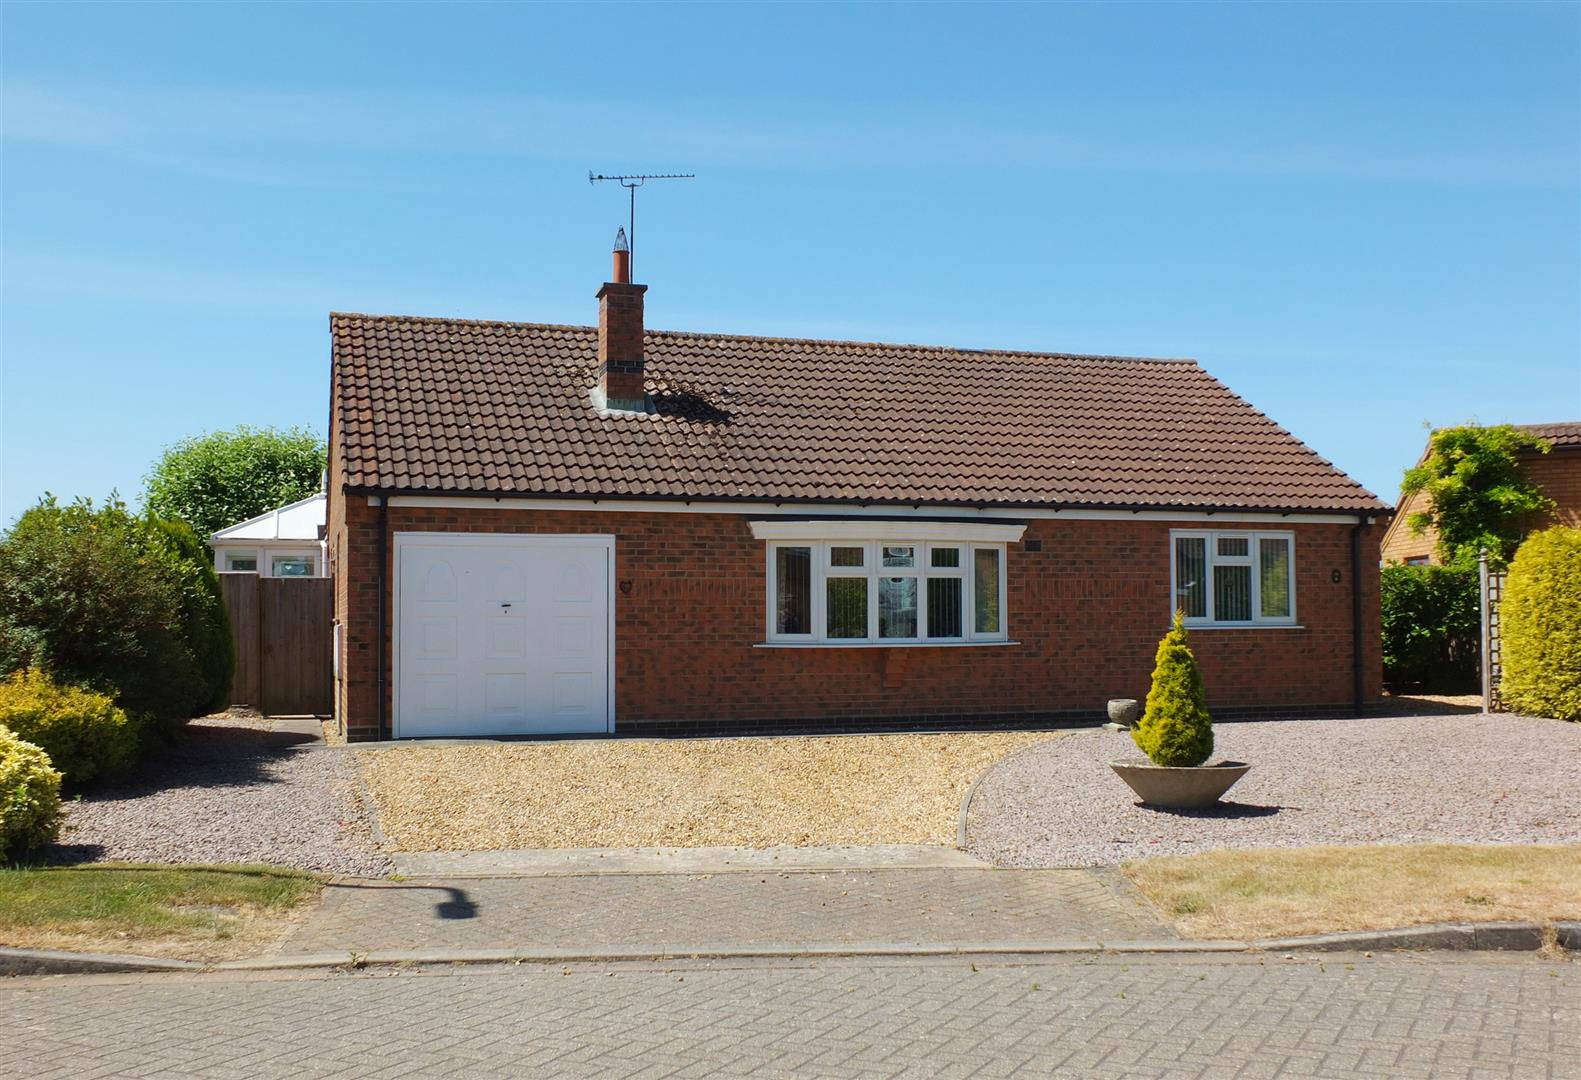 2 bed detached bungalow for sale in Lutton Spalding, PE12 9LX, PE12